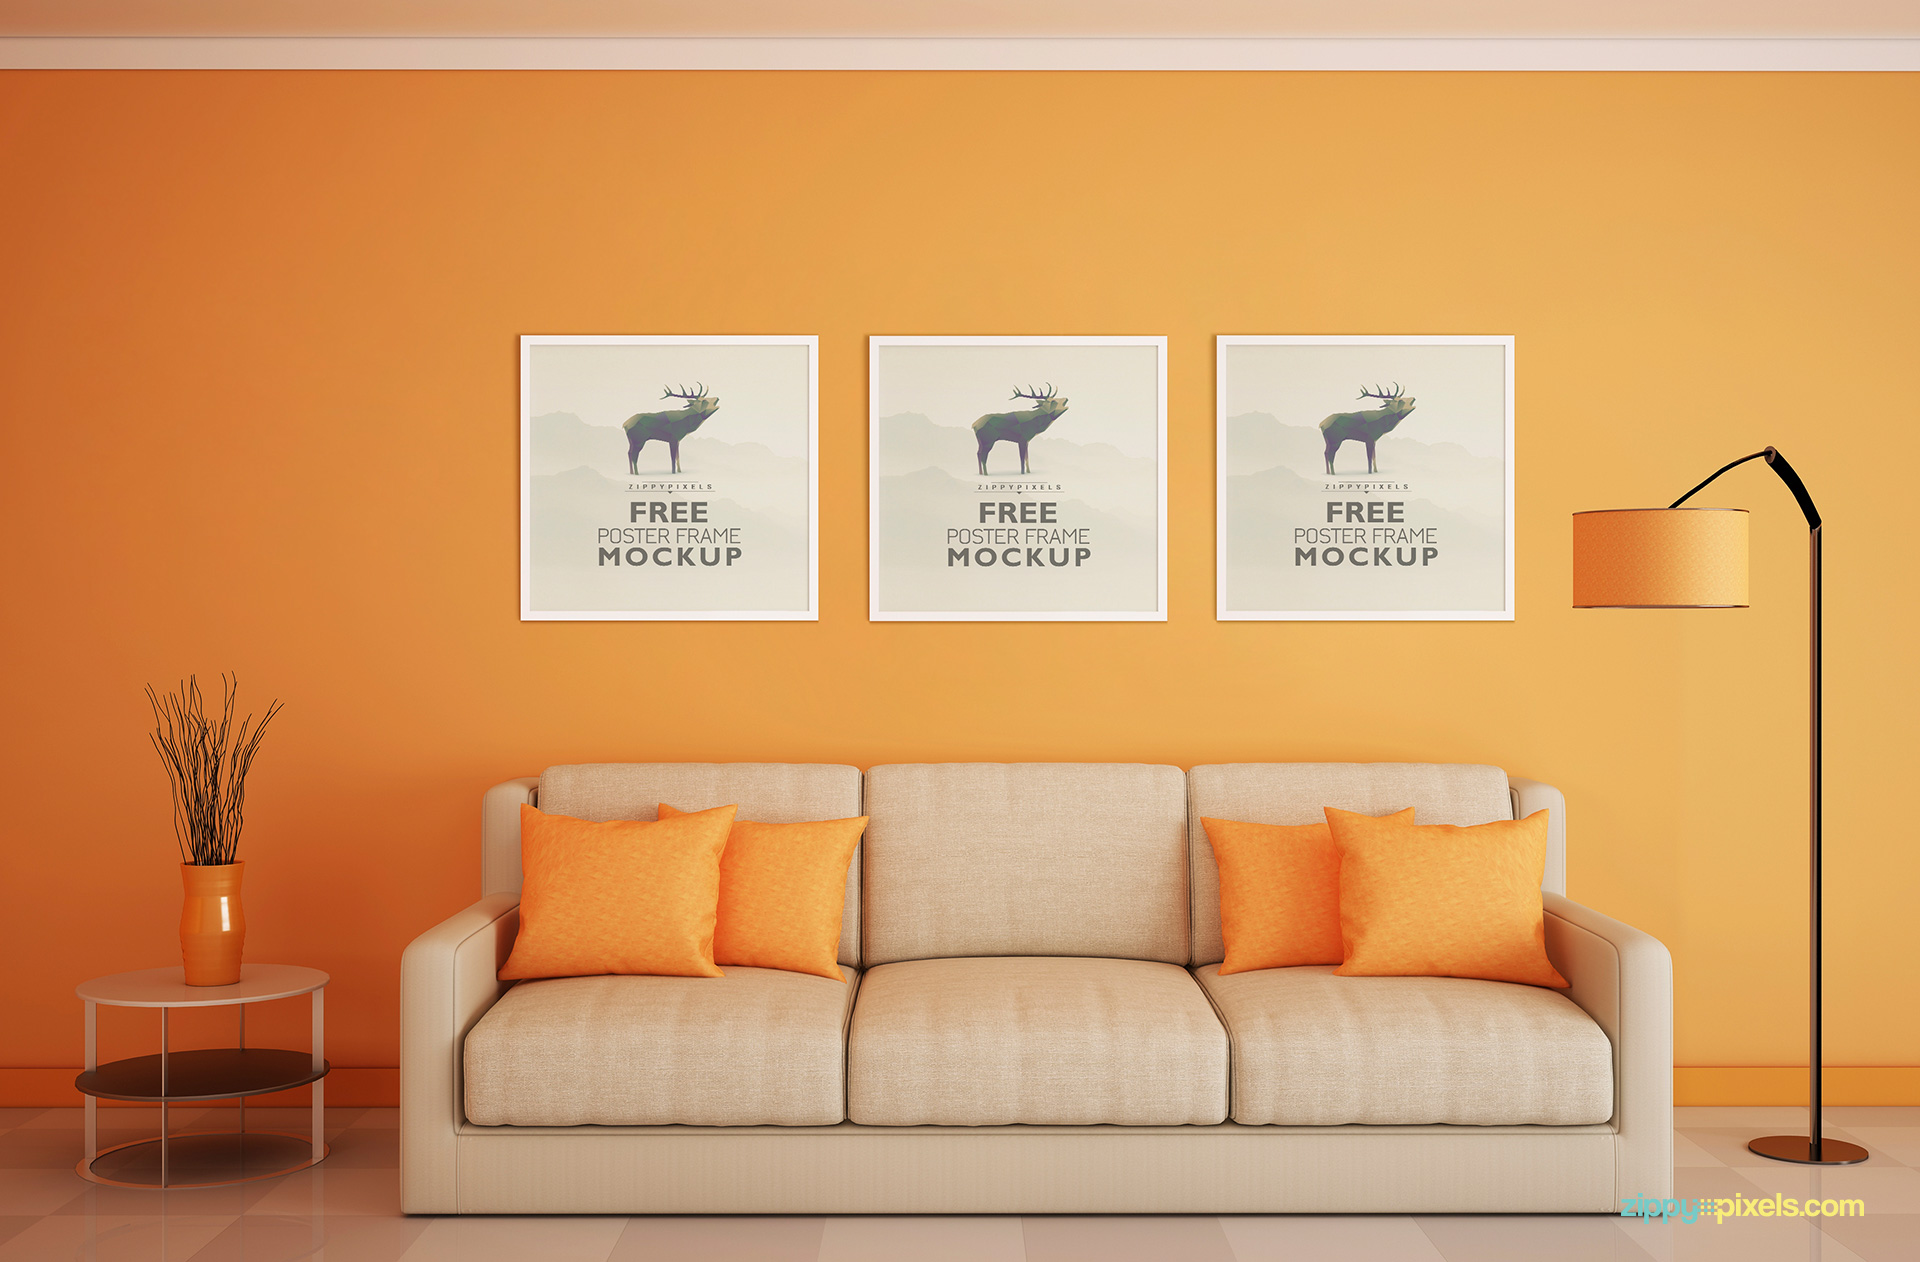 free-photo-frame-mockup-3-small-square-posters